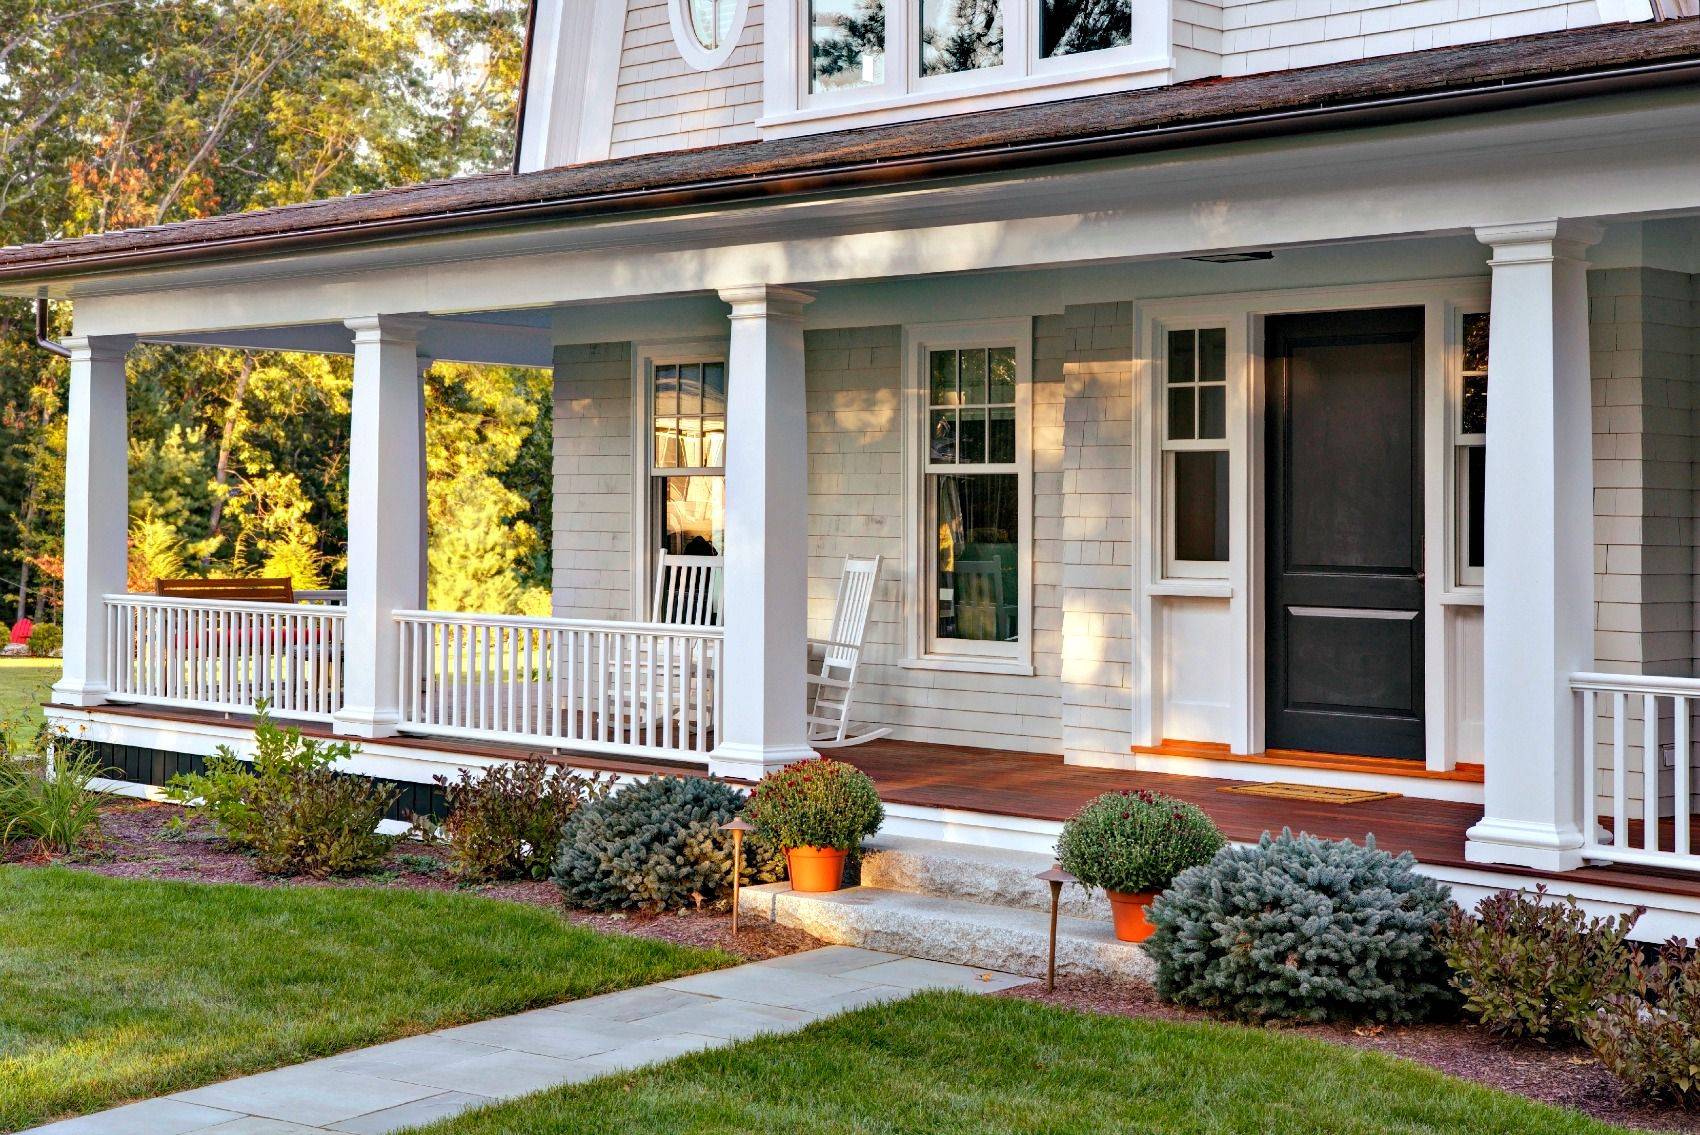 What's The Difference Between A Patio And A Porch?